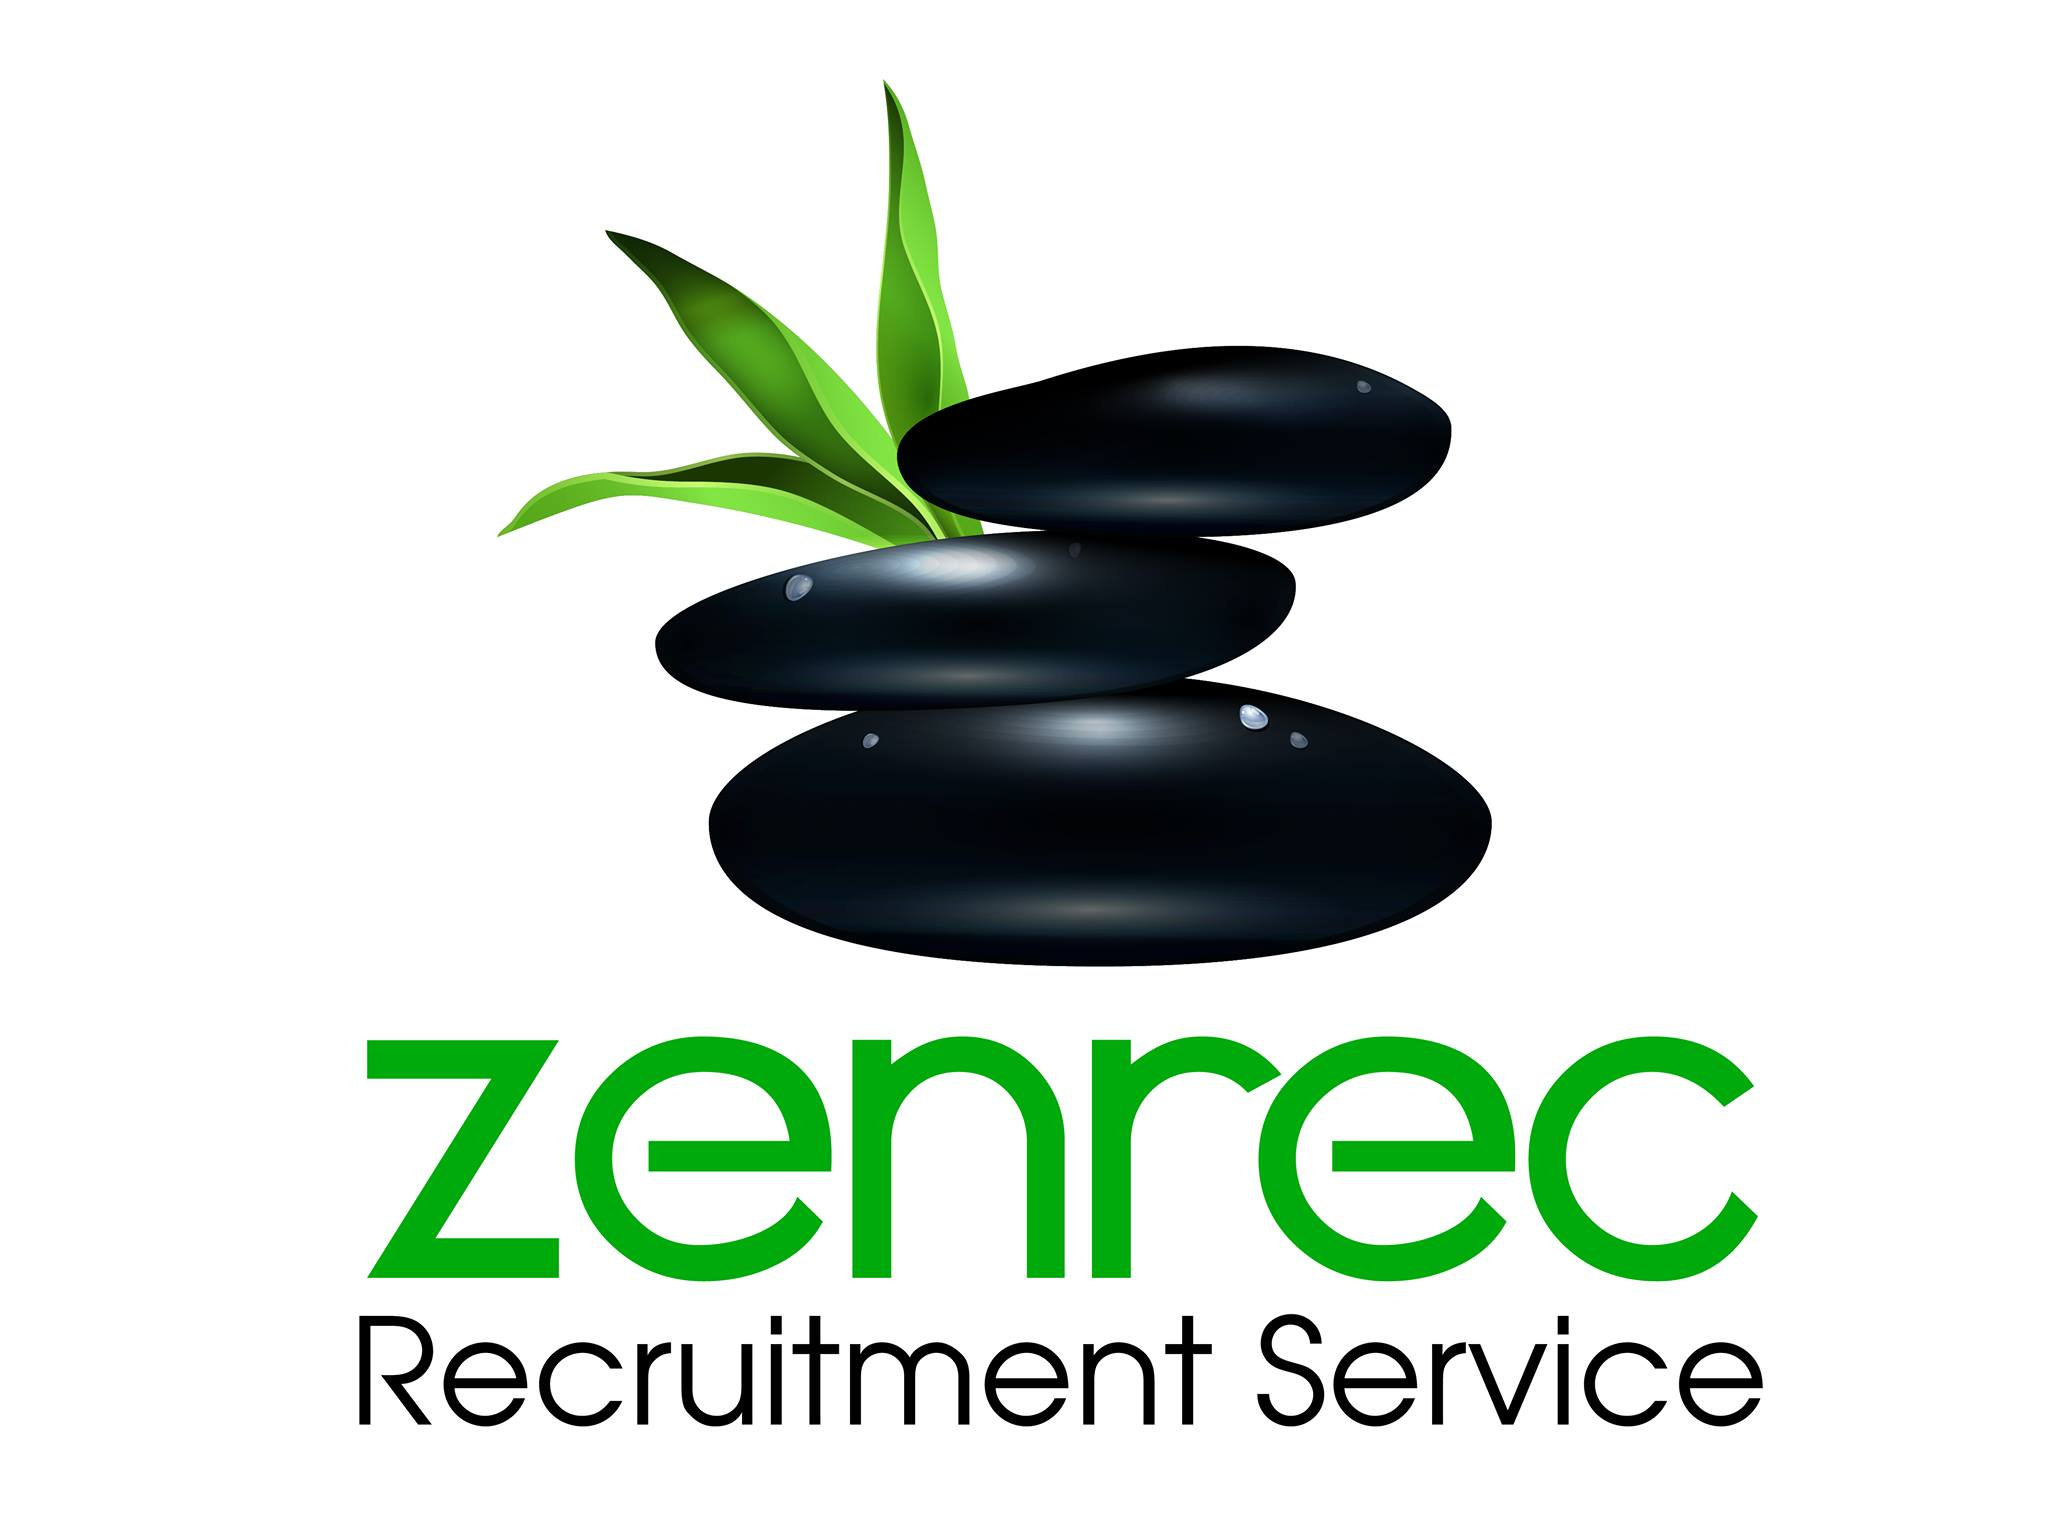 zenrec logo high res.jpg